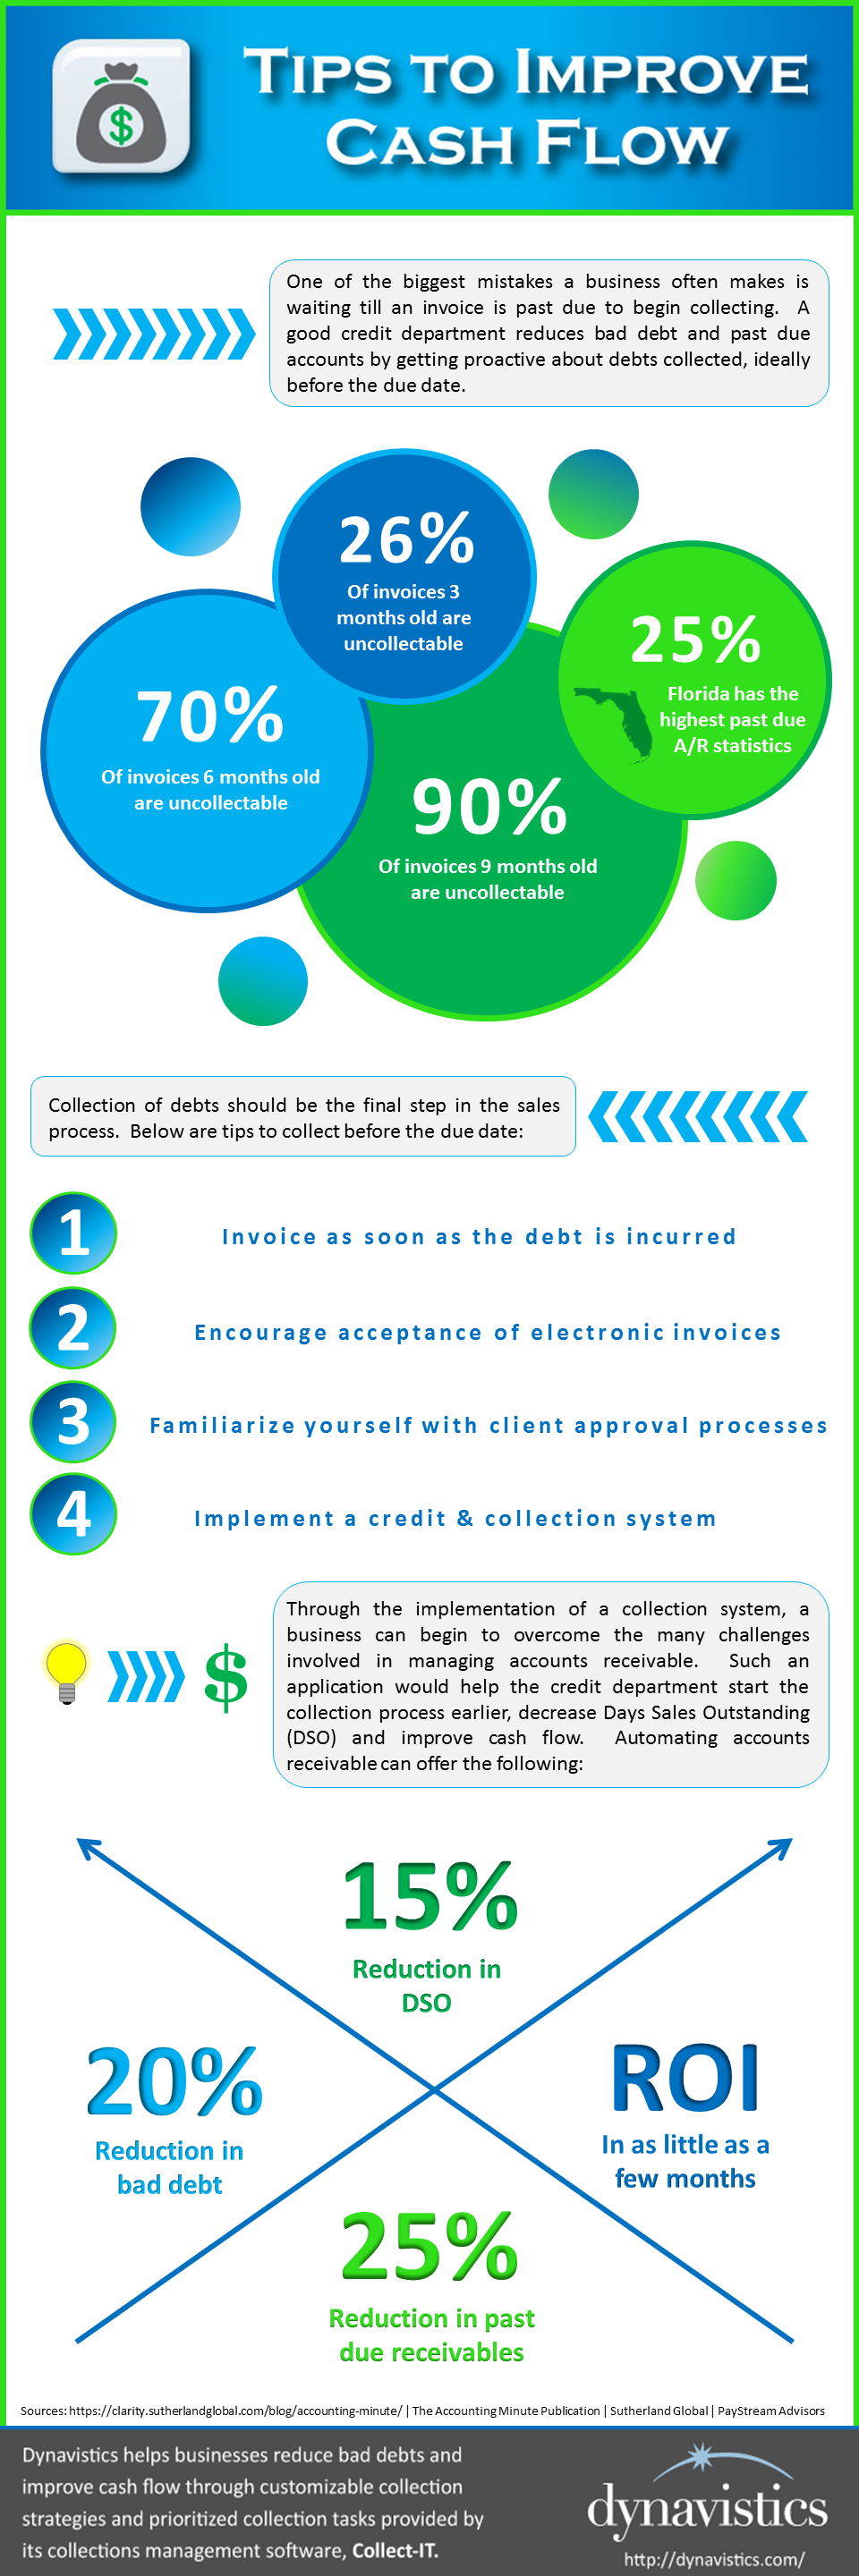 Tips to Improve Cash Flow_Infographic